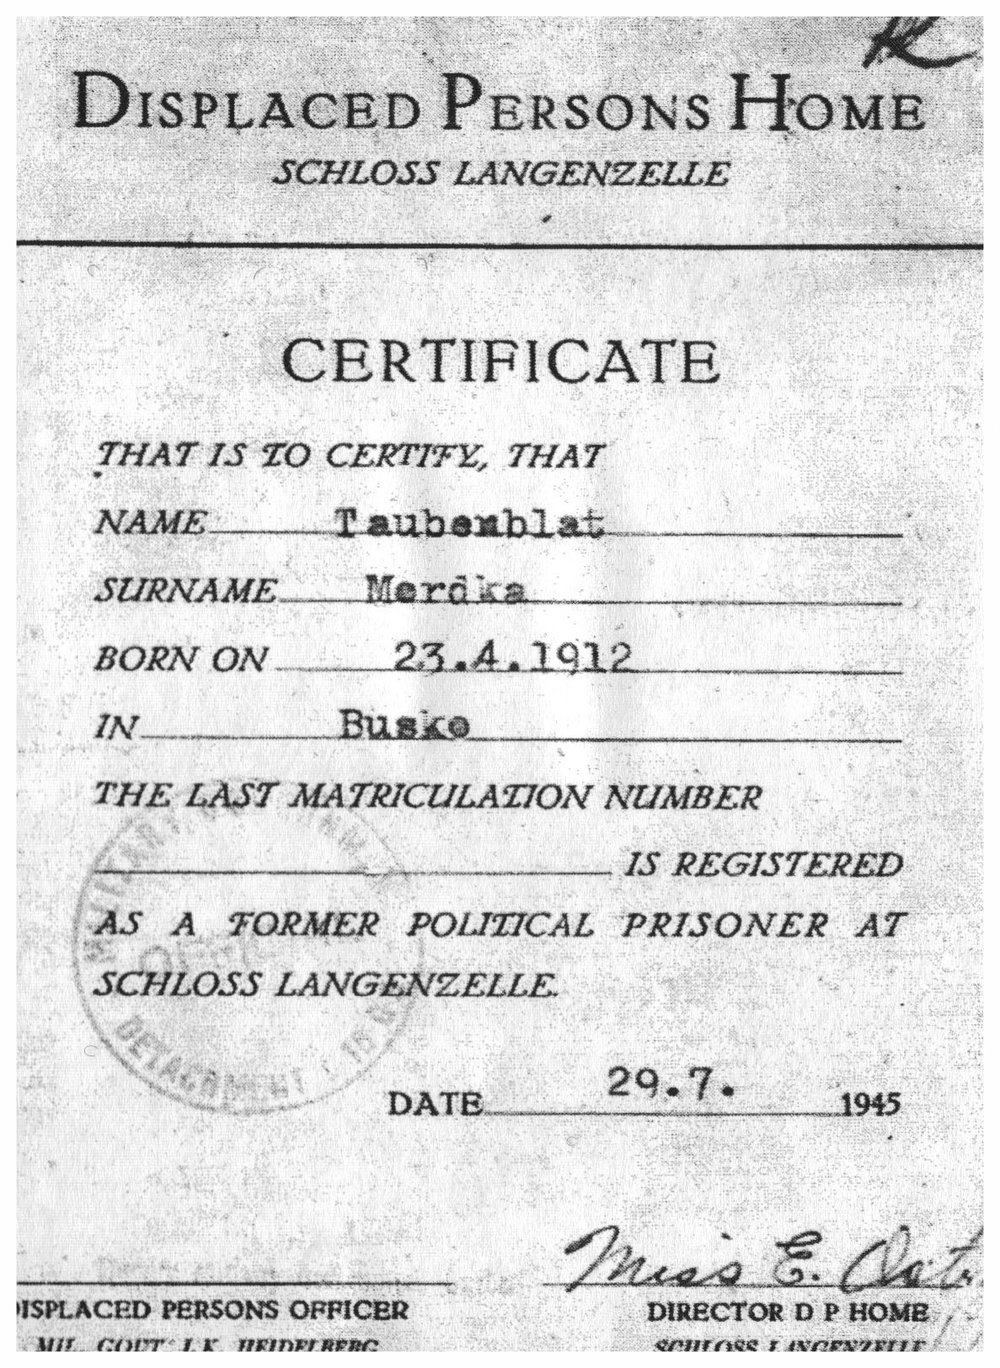 Certificate of registration at post-war DP camp